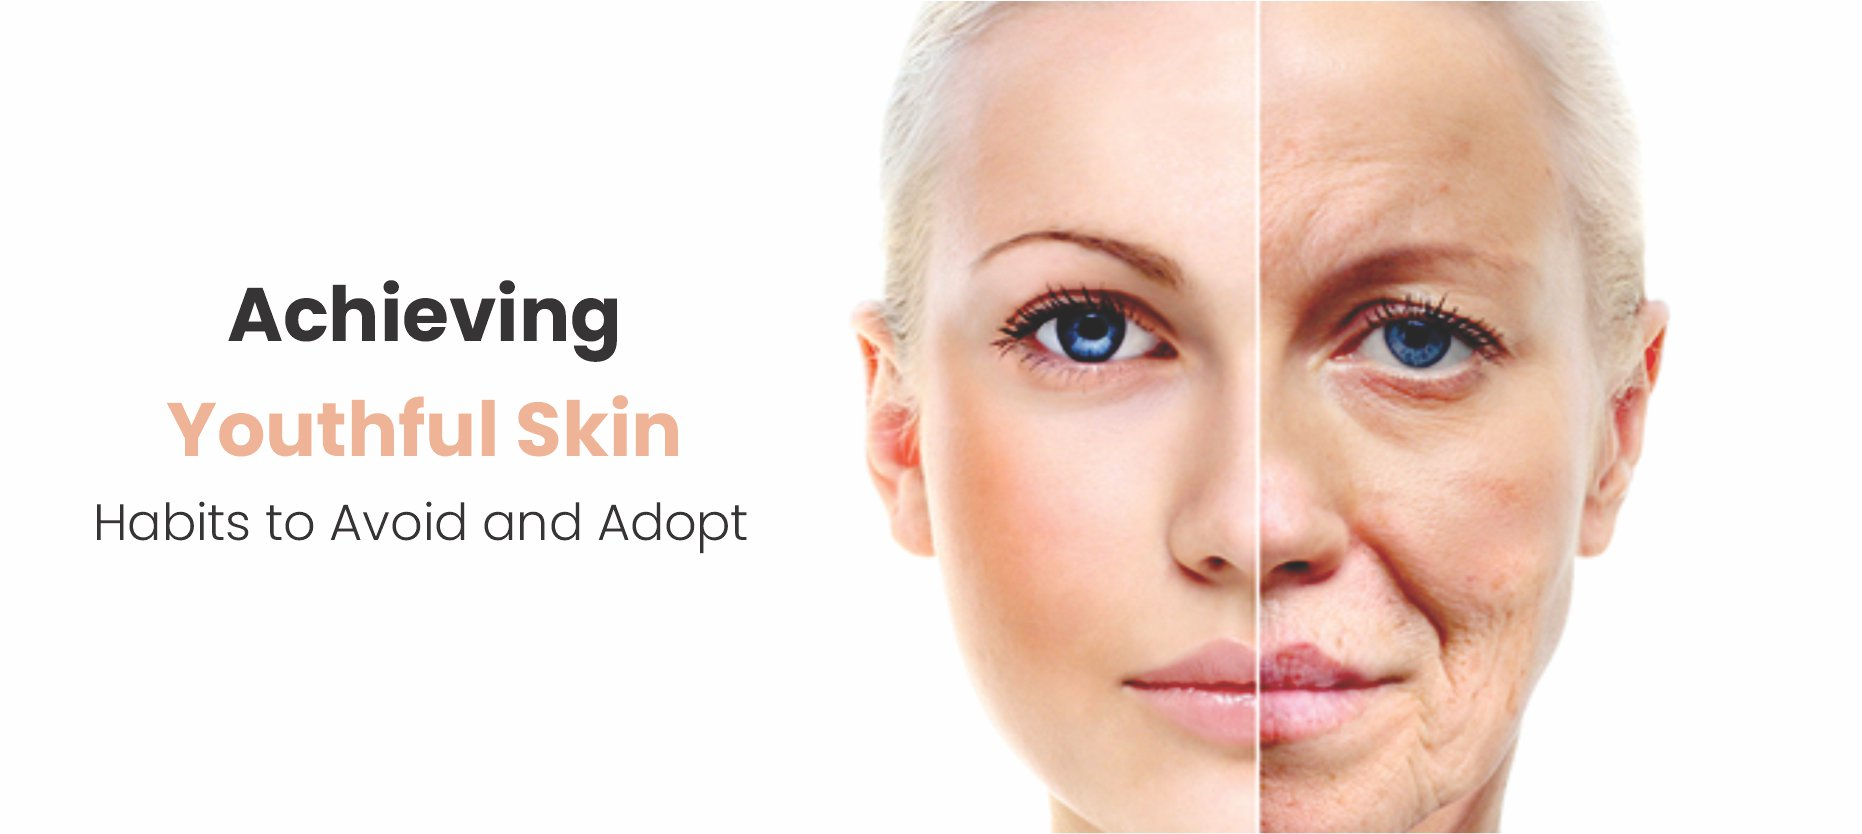 Achieving Youthful Skin: Habits to Avoid and Adopt